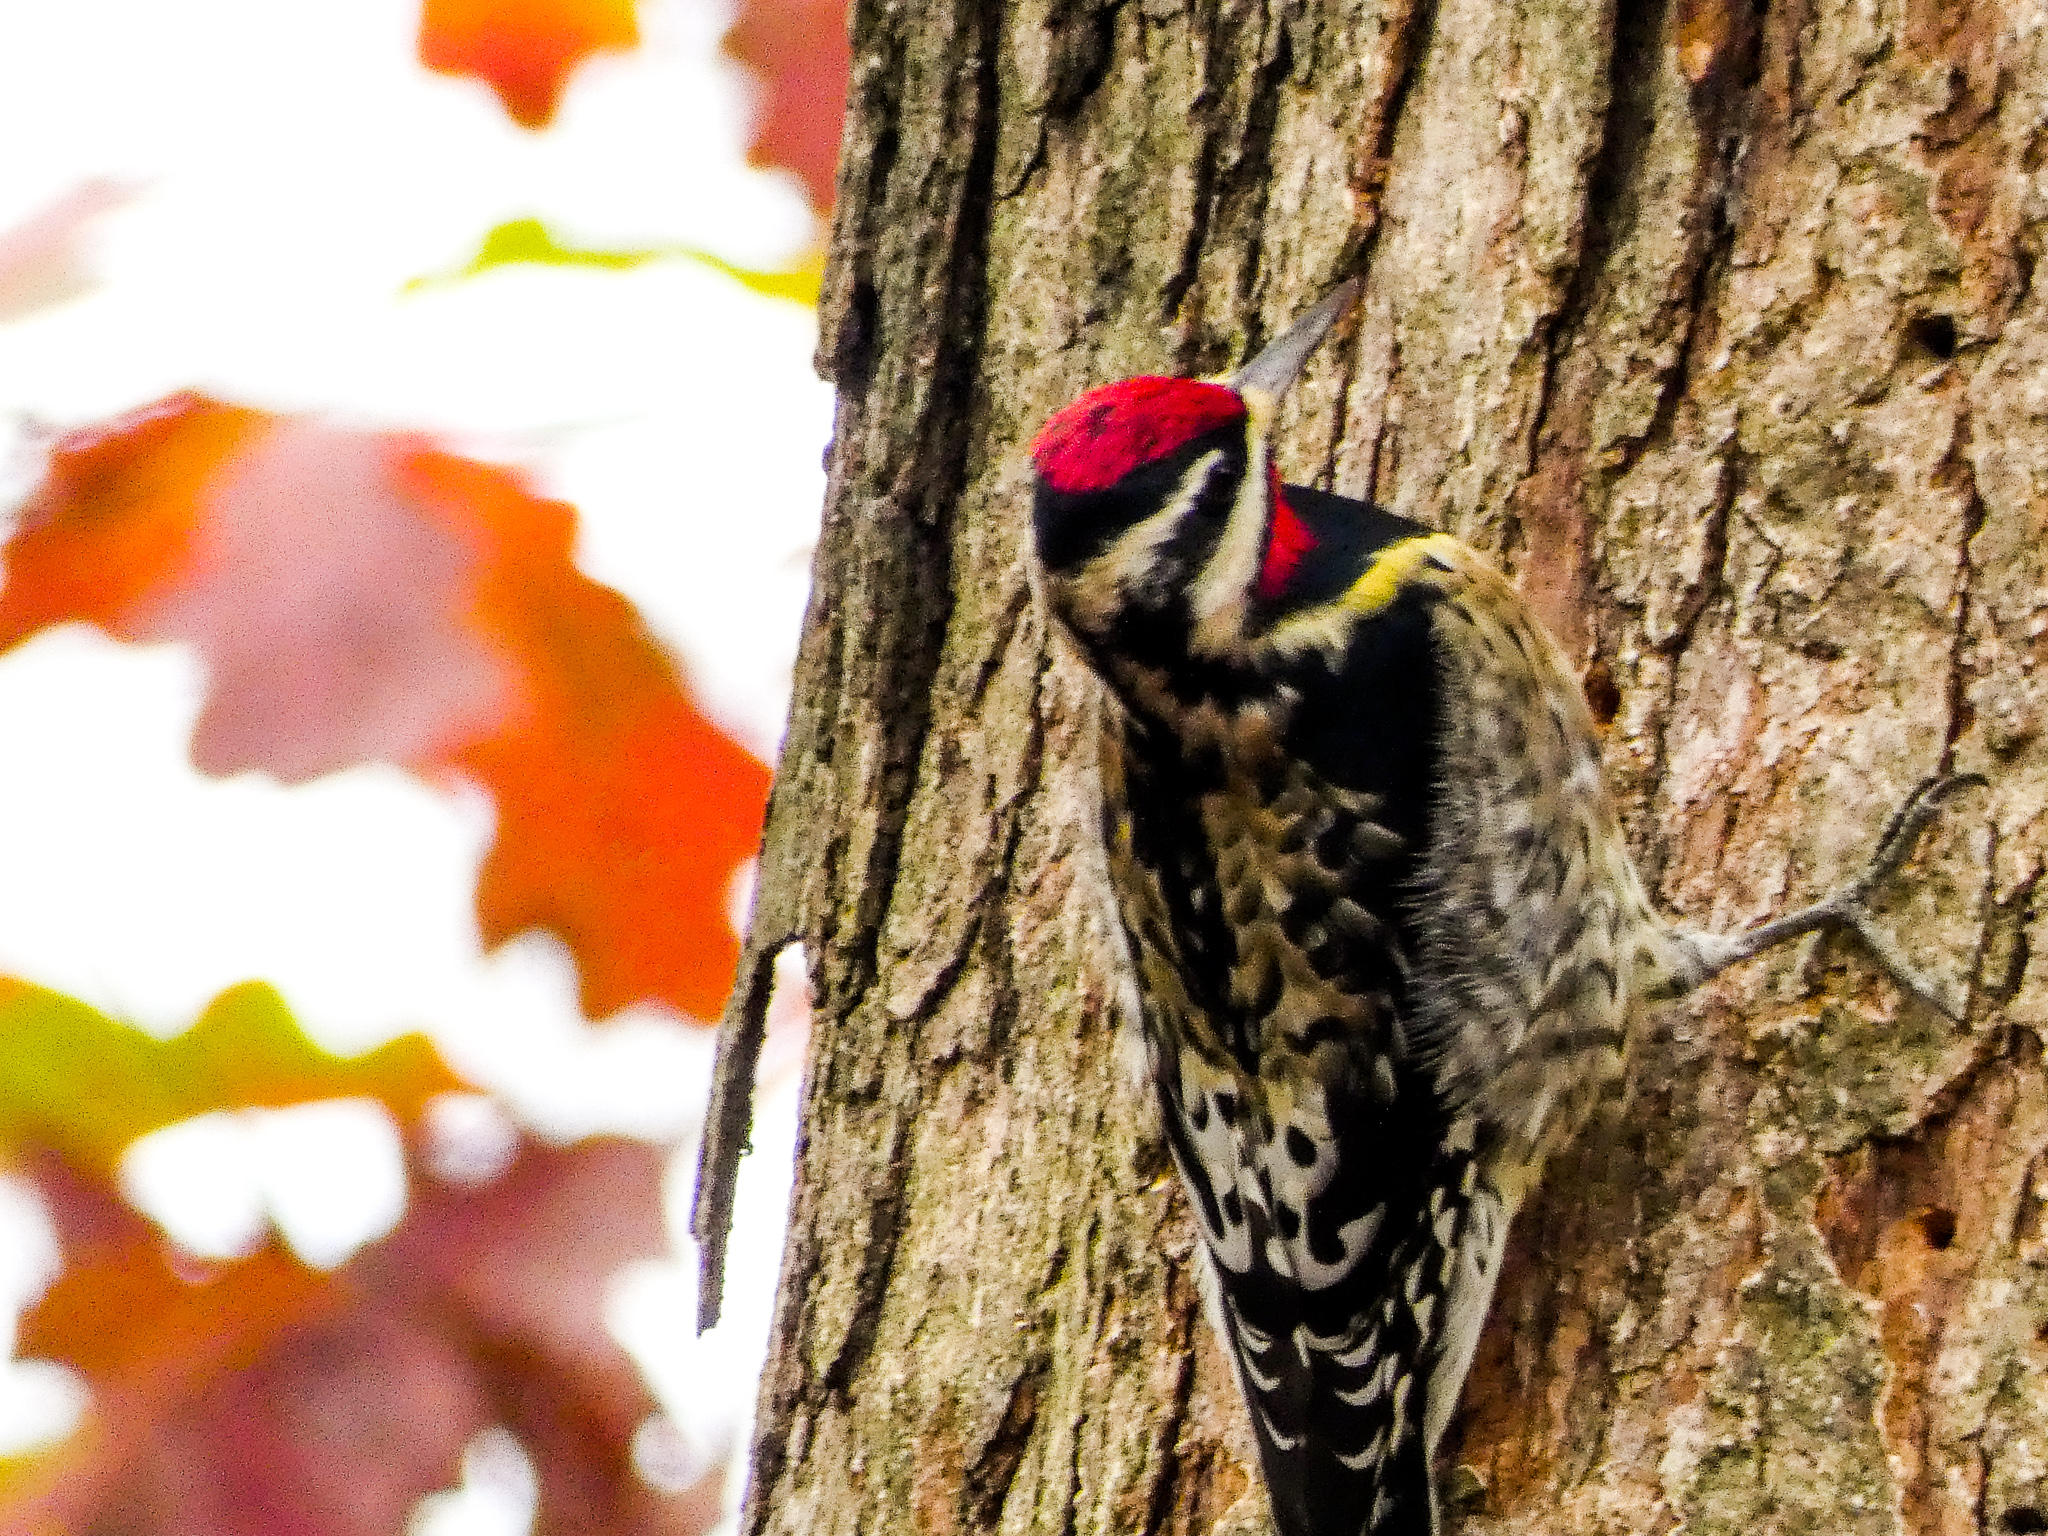 Another backyard beauty who graced me with a visit this summer. Also in the woodpecker family. Keep your eyes open for this one ... easy to miss ... but an absolute treat to watch.